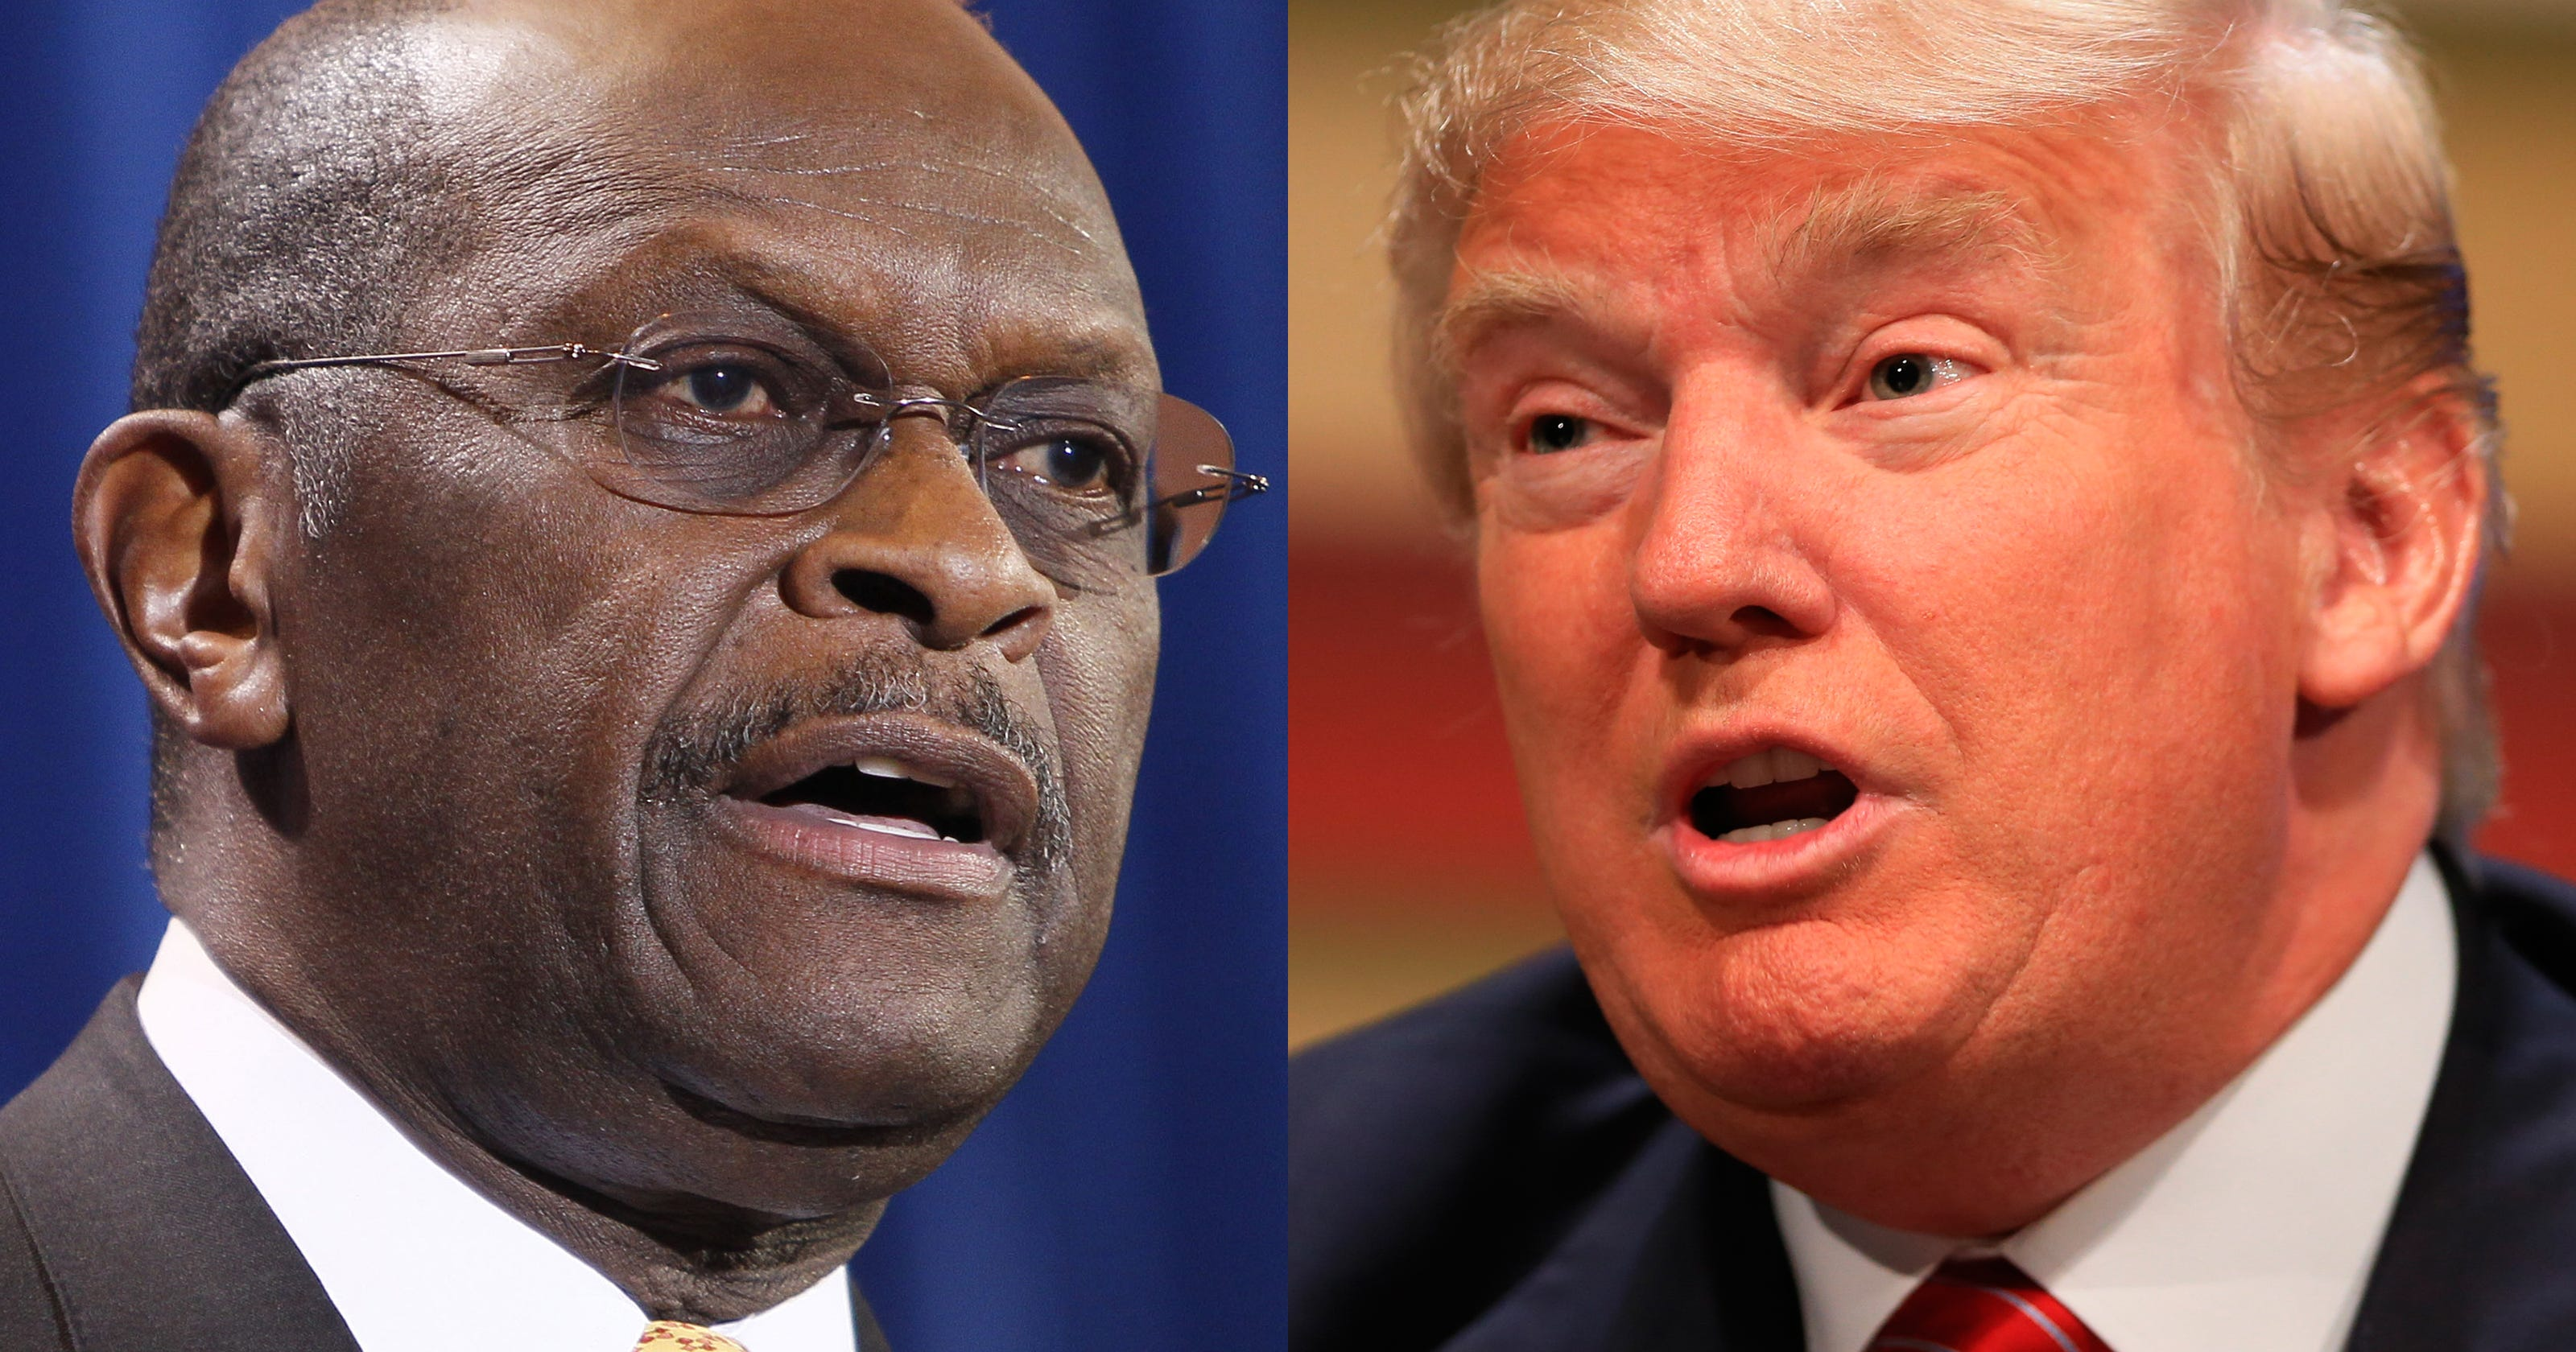 Herman Cain: Trump won't nominate him to Federal Reserve